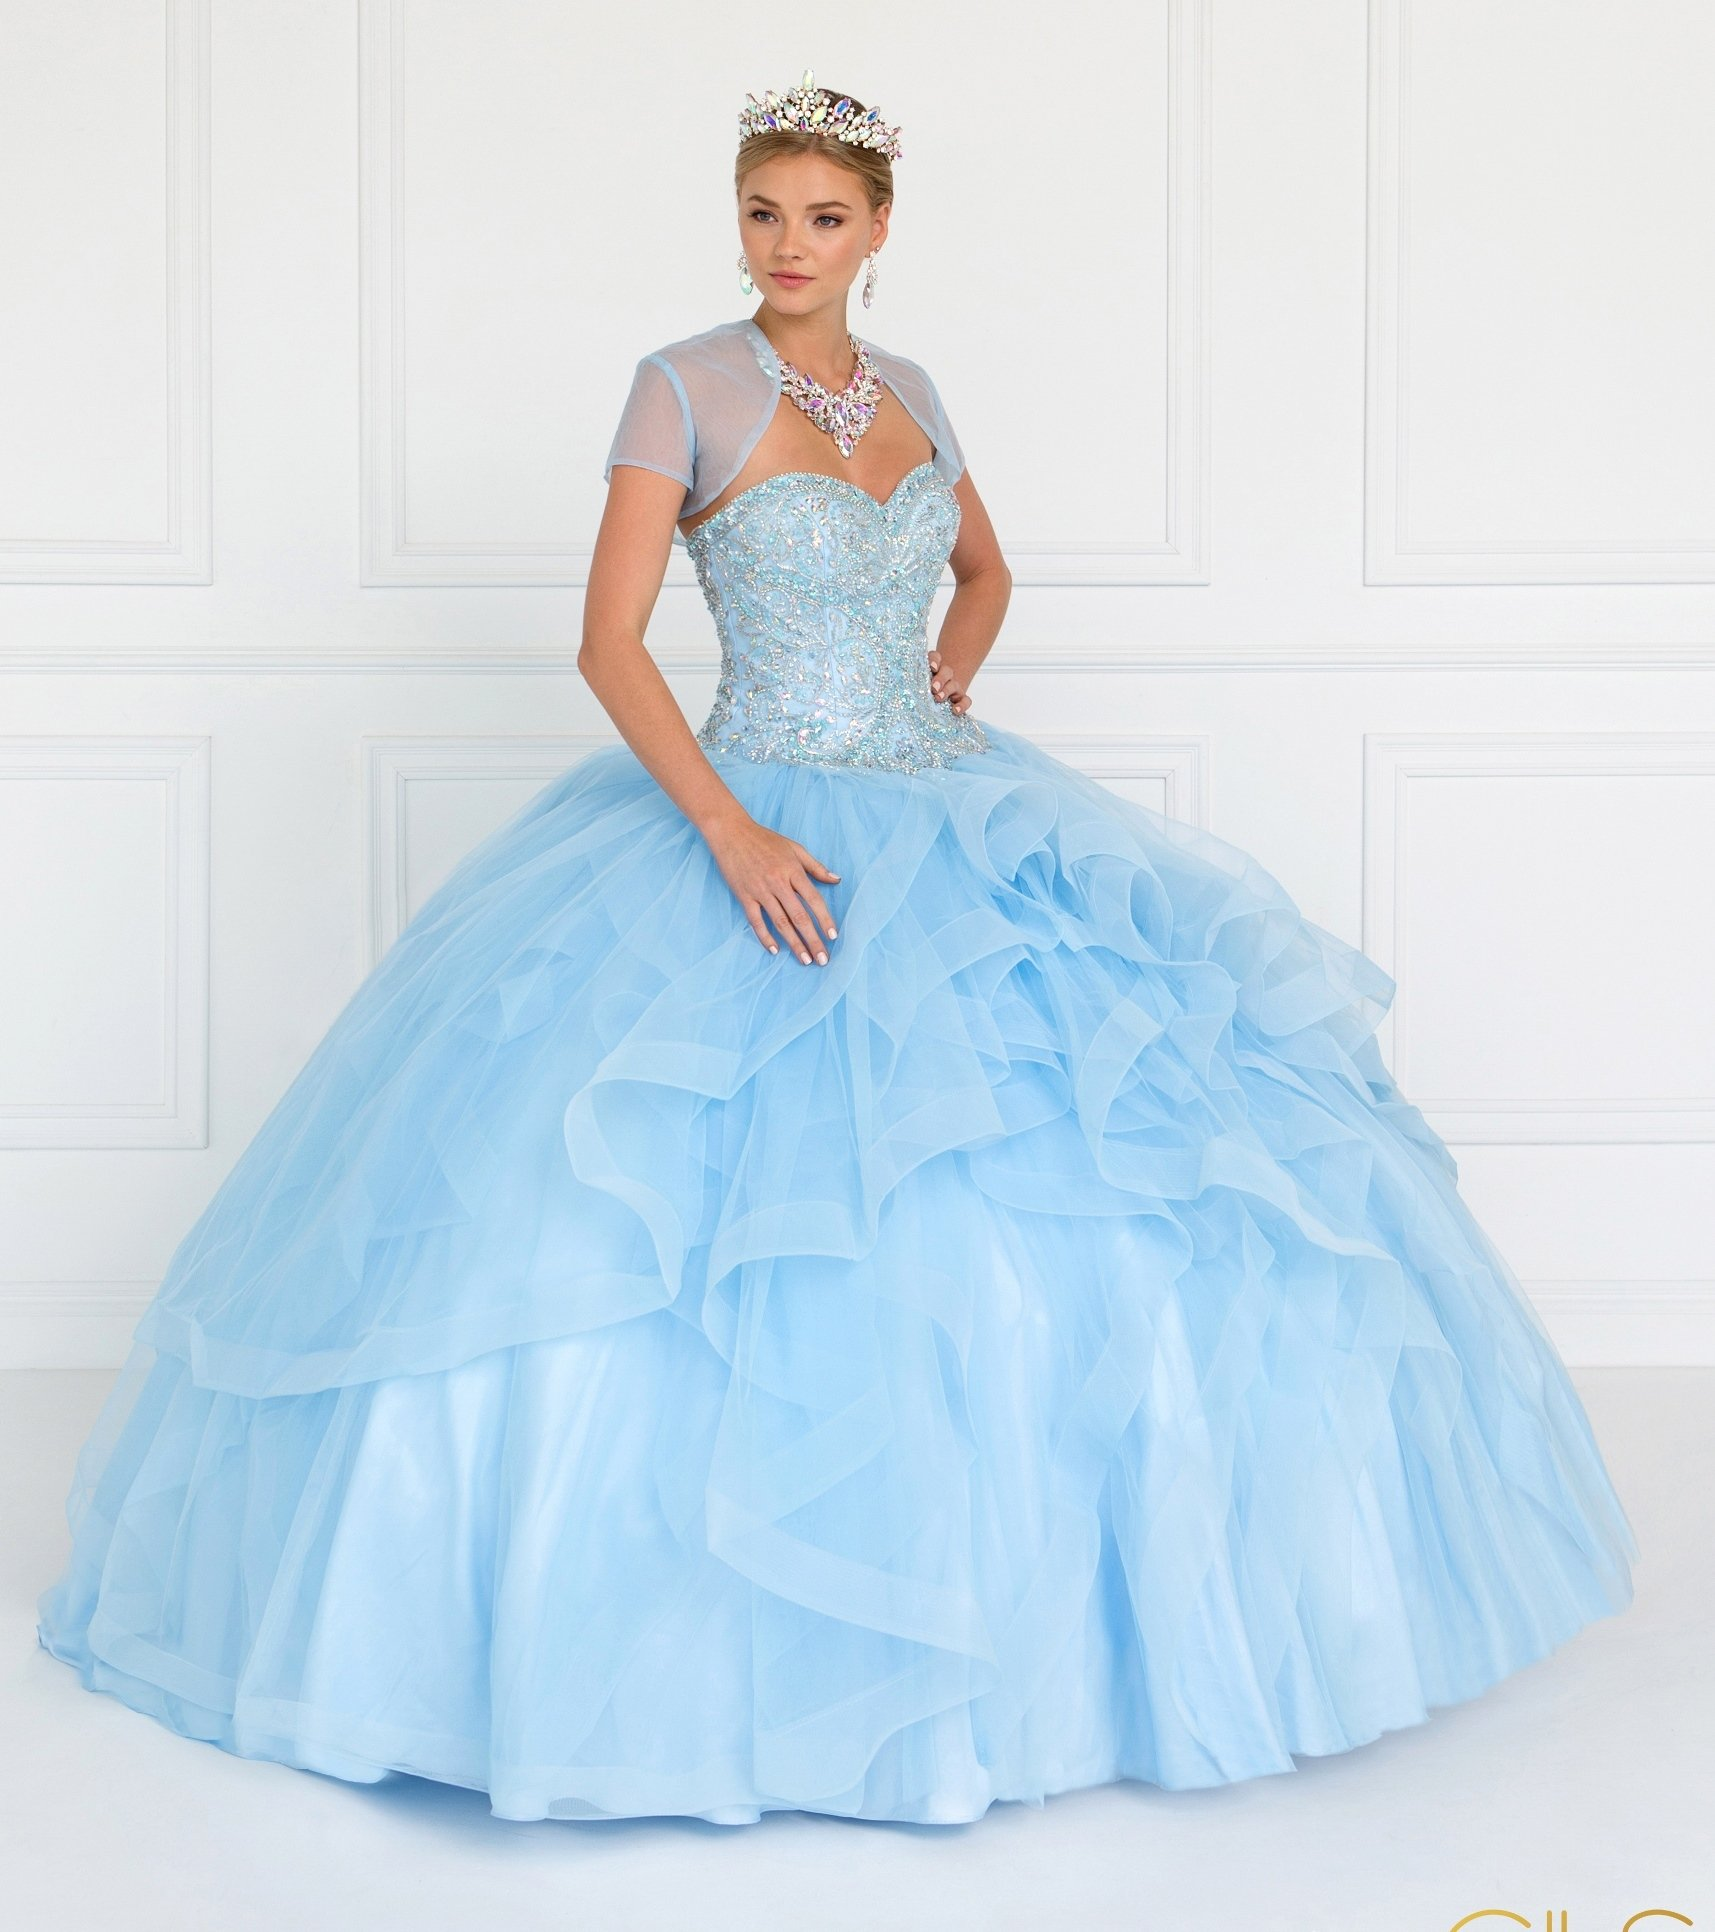 Strapless Ruffled Ball Gown With Bolero Jacket By